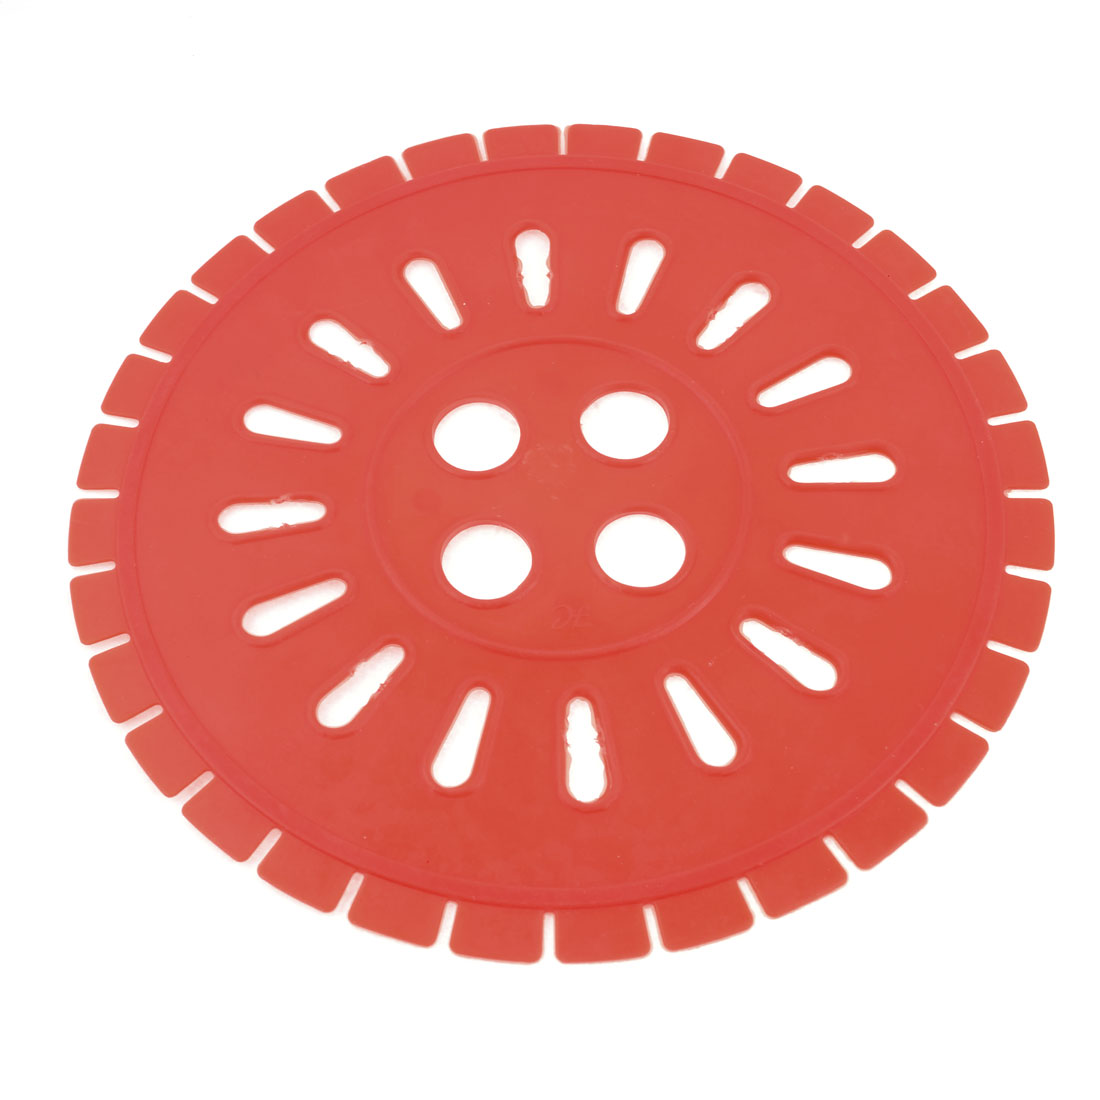 260mm Dia Soft Plastic Clothes Dryer Cover Ring Orange Red for Washing Machine